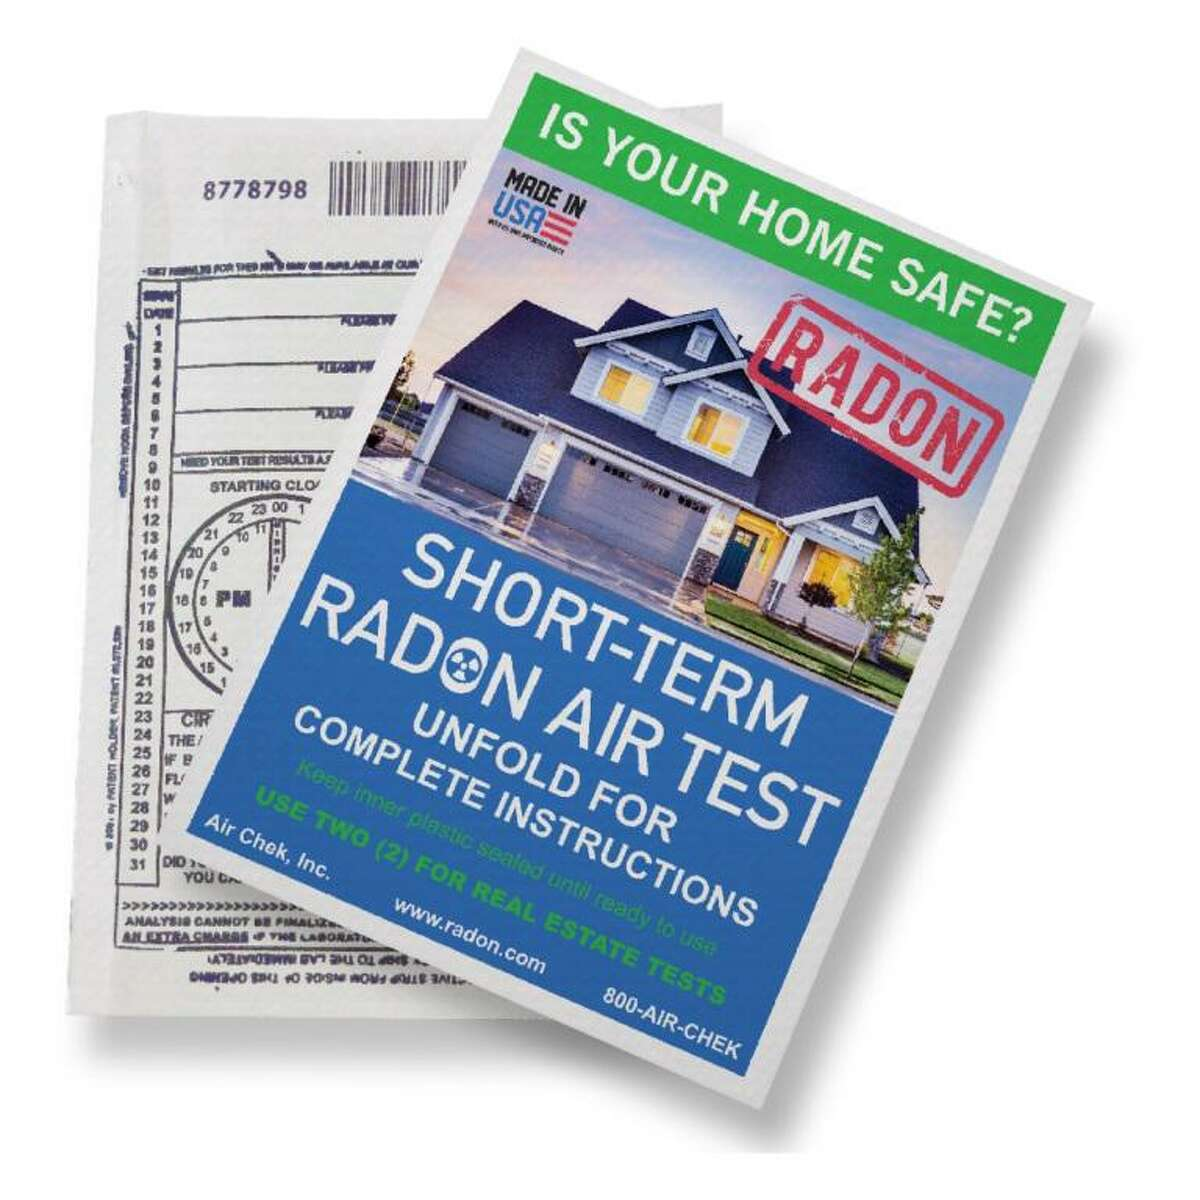 Norwalk Health Department is offering free radon testing kits to be delivered to Norwalk homes in honor of National Radon Action Month.